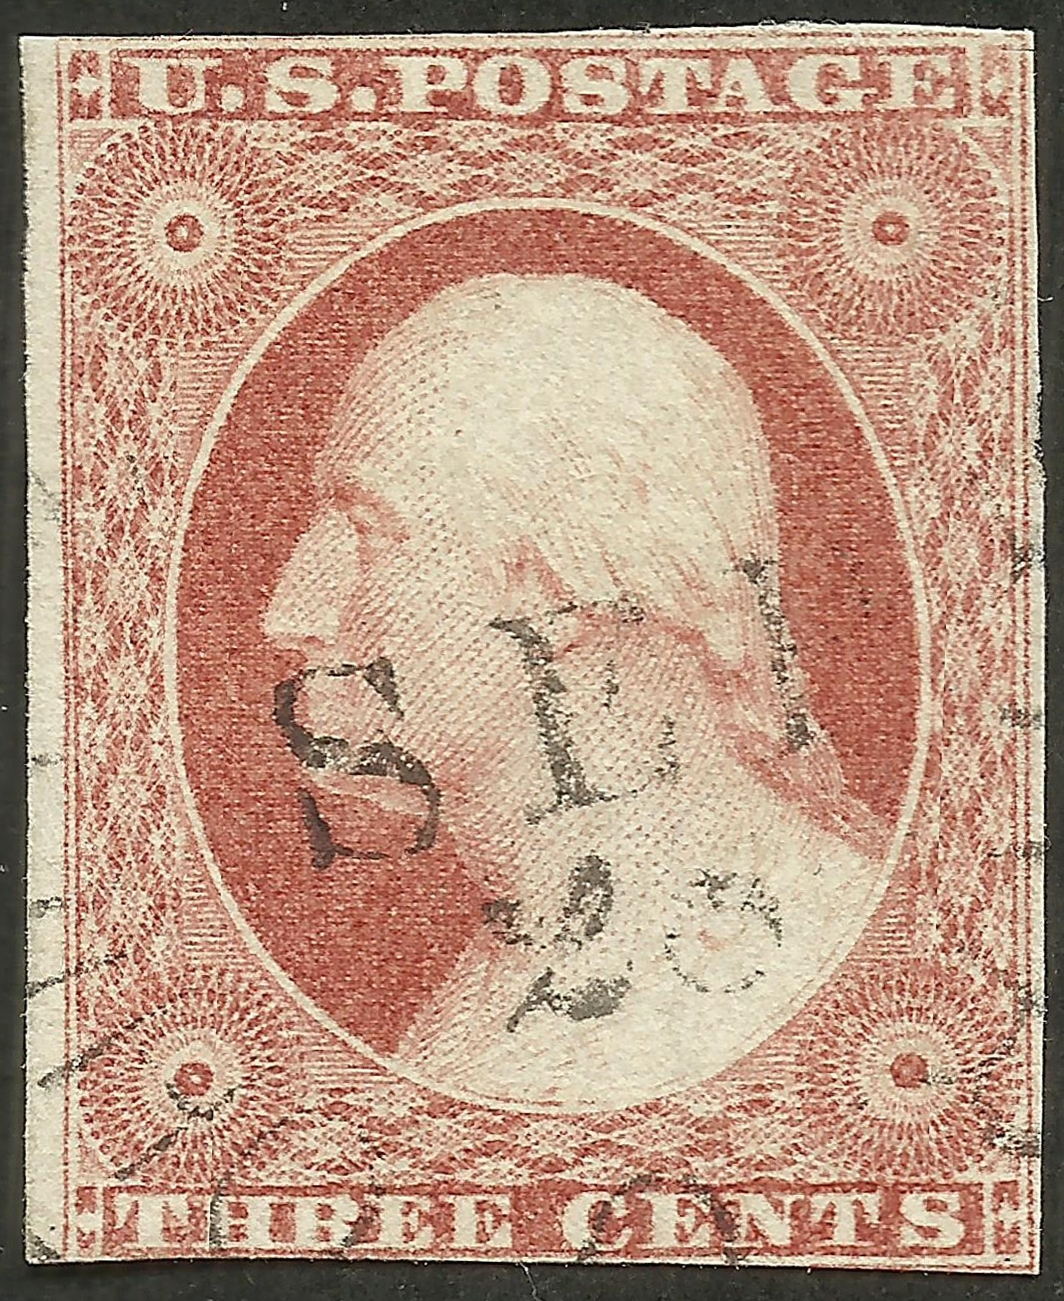 United States #11A (1851) postmarked 28 September 18xx